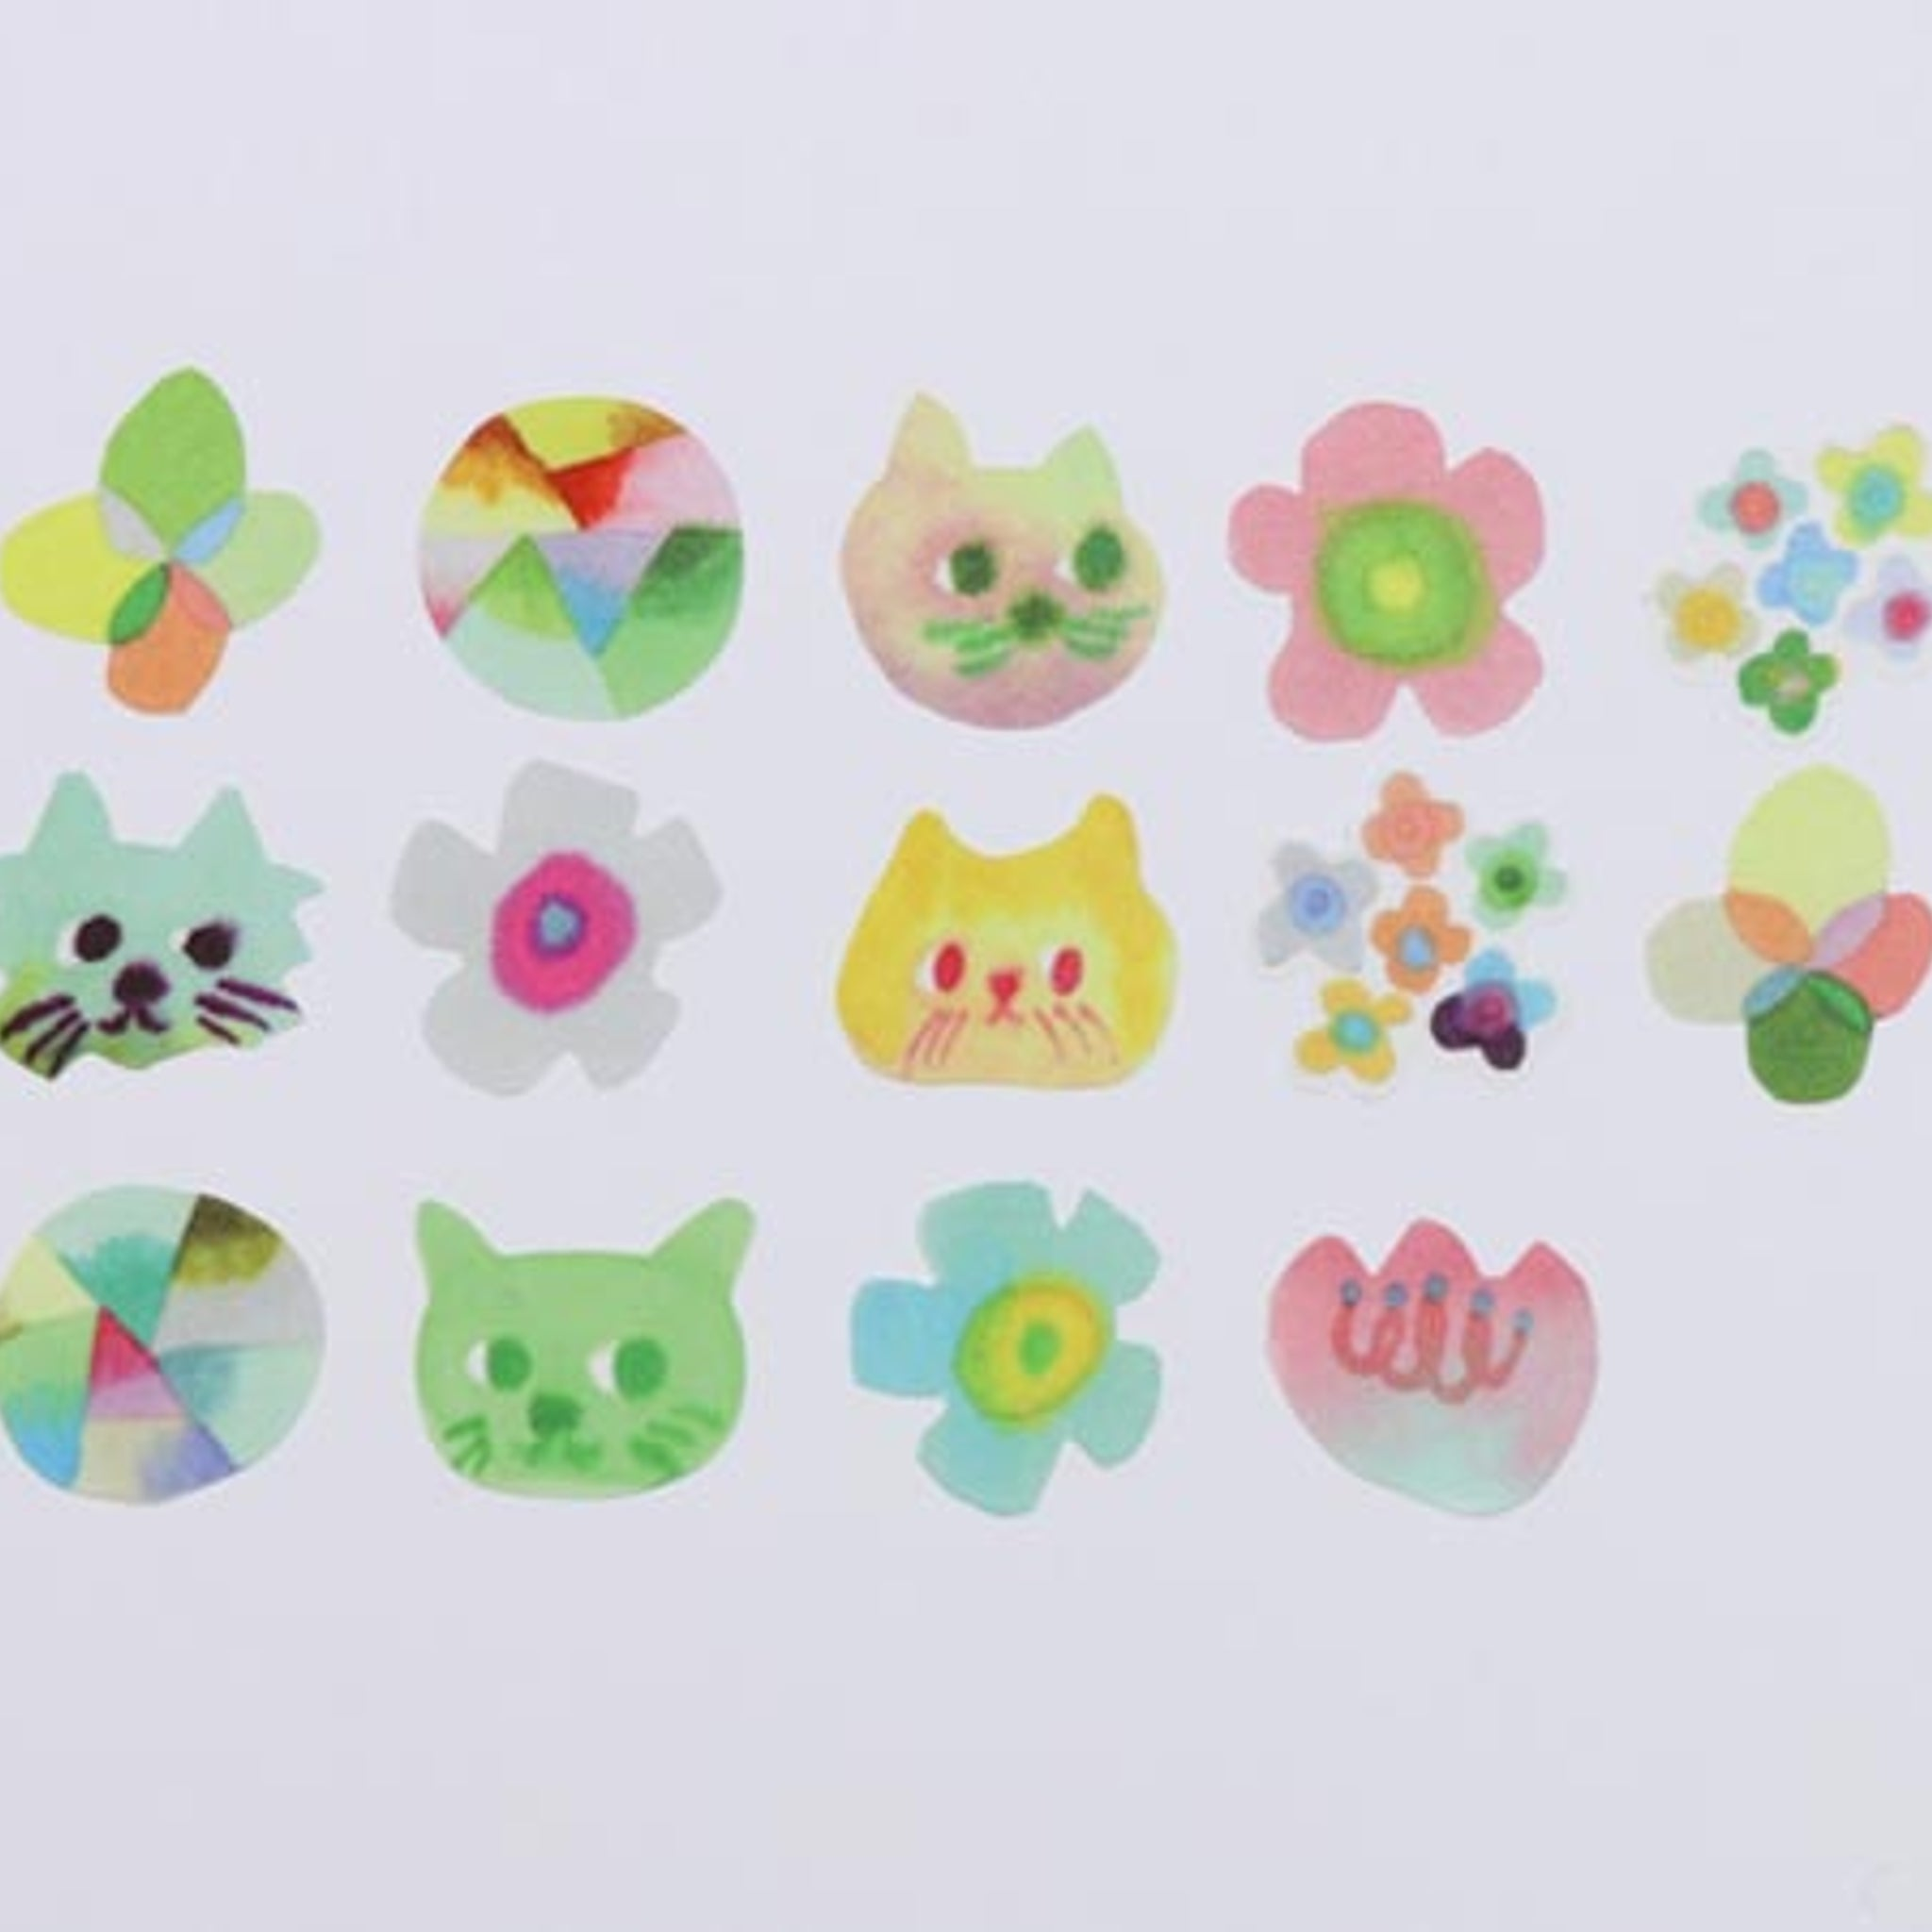 Bande Cat's ISSUE Original Washi Roll Sticker